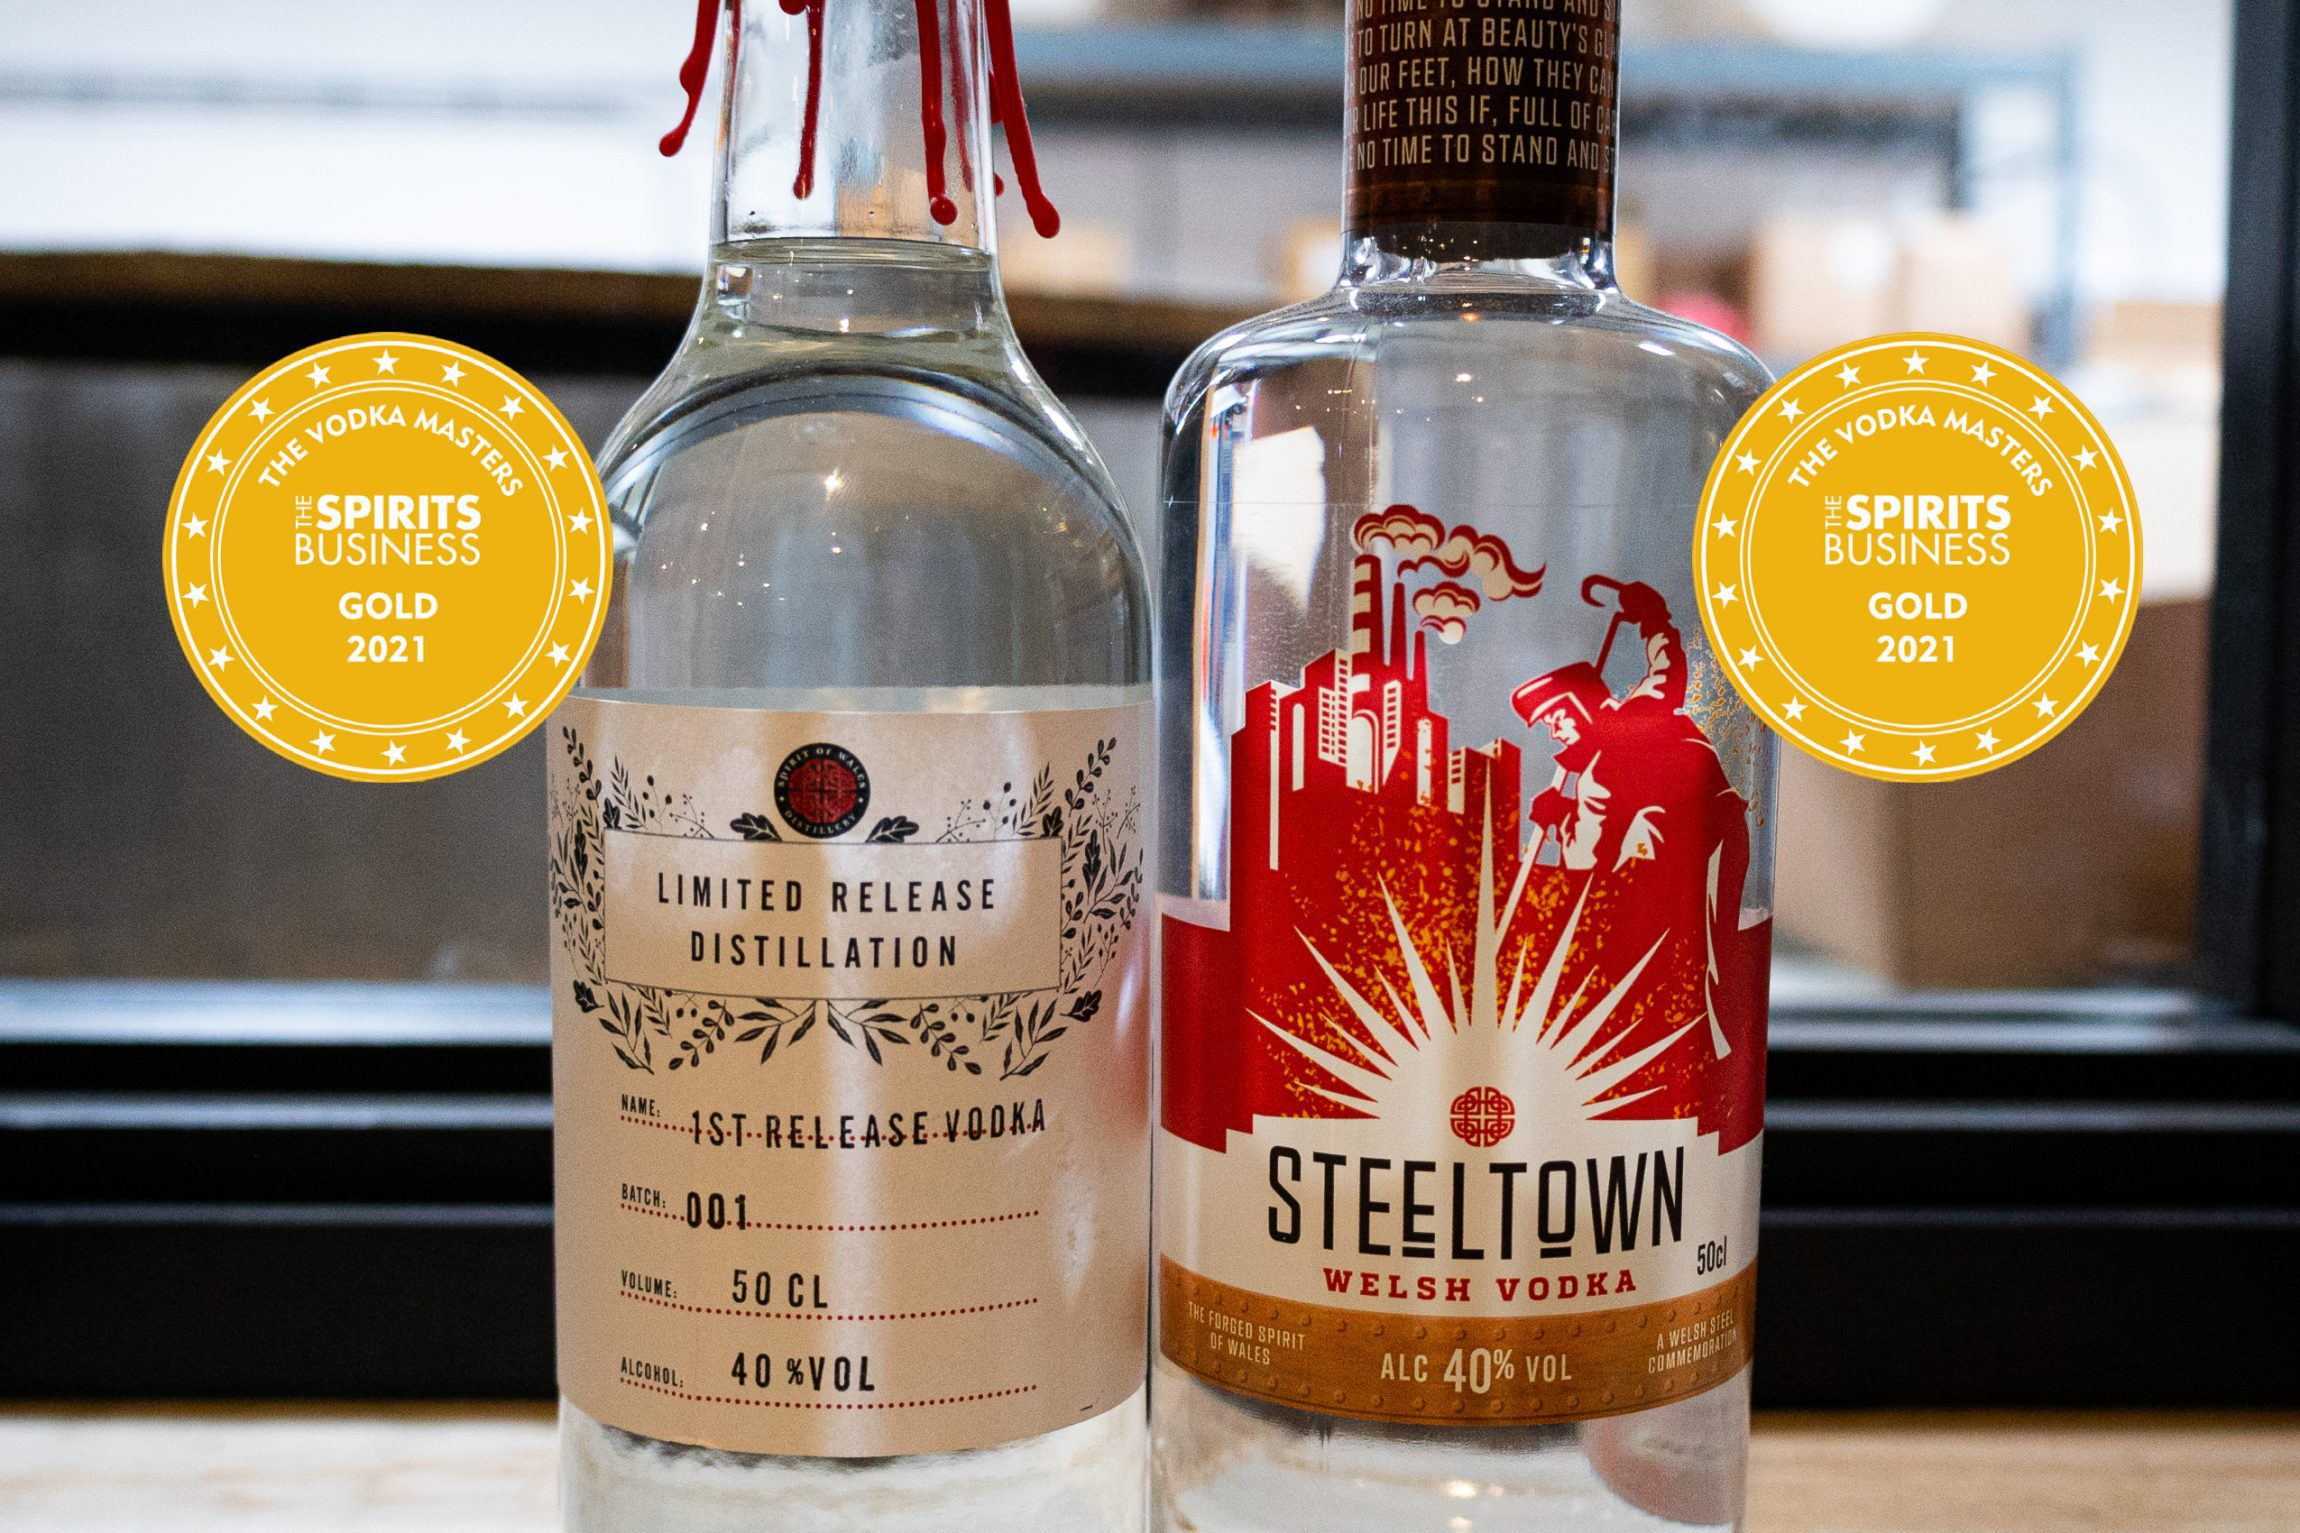 Spirit of Wales Distillery win two gold medals for their Welsh Vodka from the Vodka Masters 2021